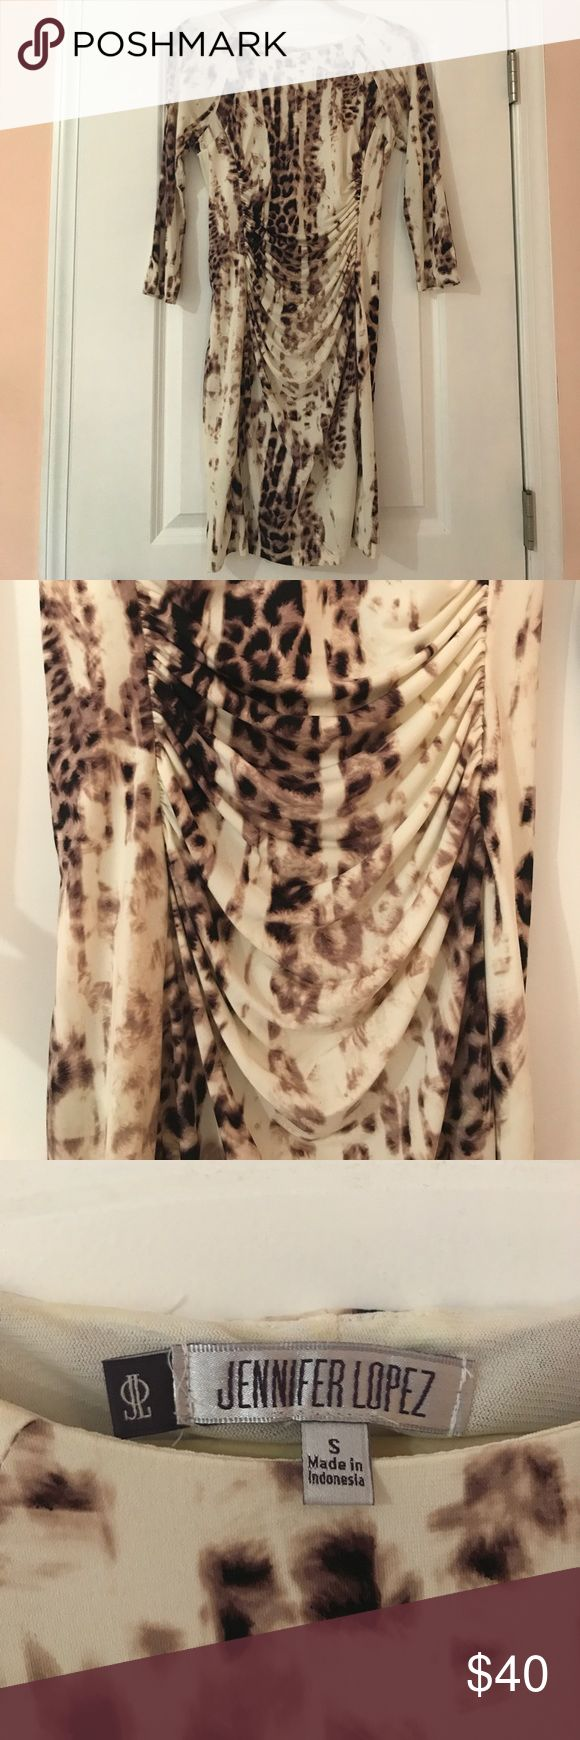 Jennifer Lopez Multi Color Animal Print Dress Only worn once. Kept in excellent condition. Really cute and comfortable! Has a stretchy feel to it so it could fit a medium as well. For reference: I'm 5 feet tall and this hits about knee length. Jennifer Lopez Dresses